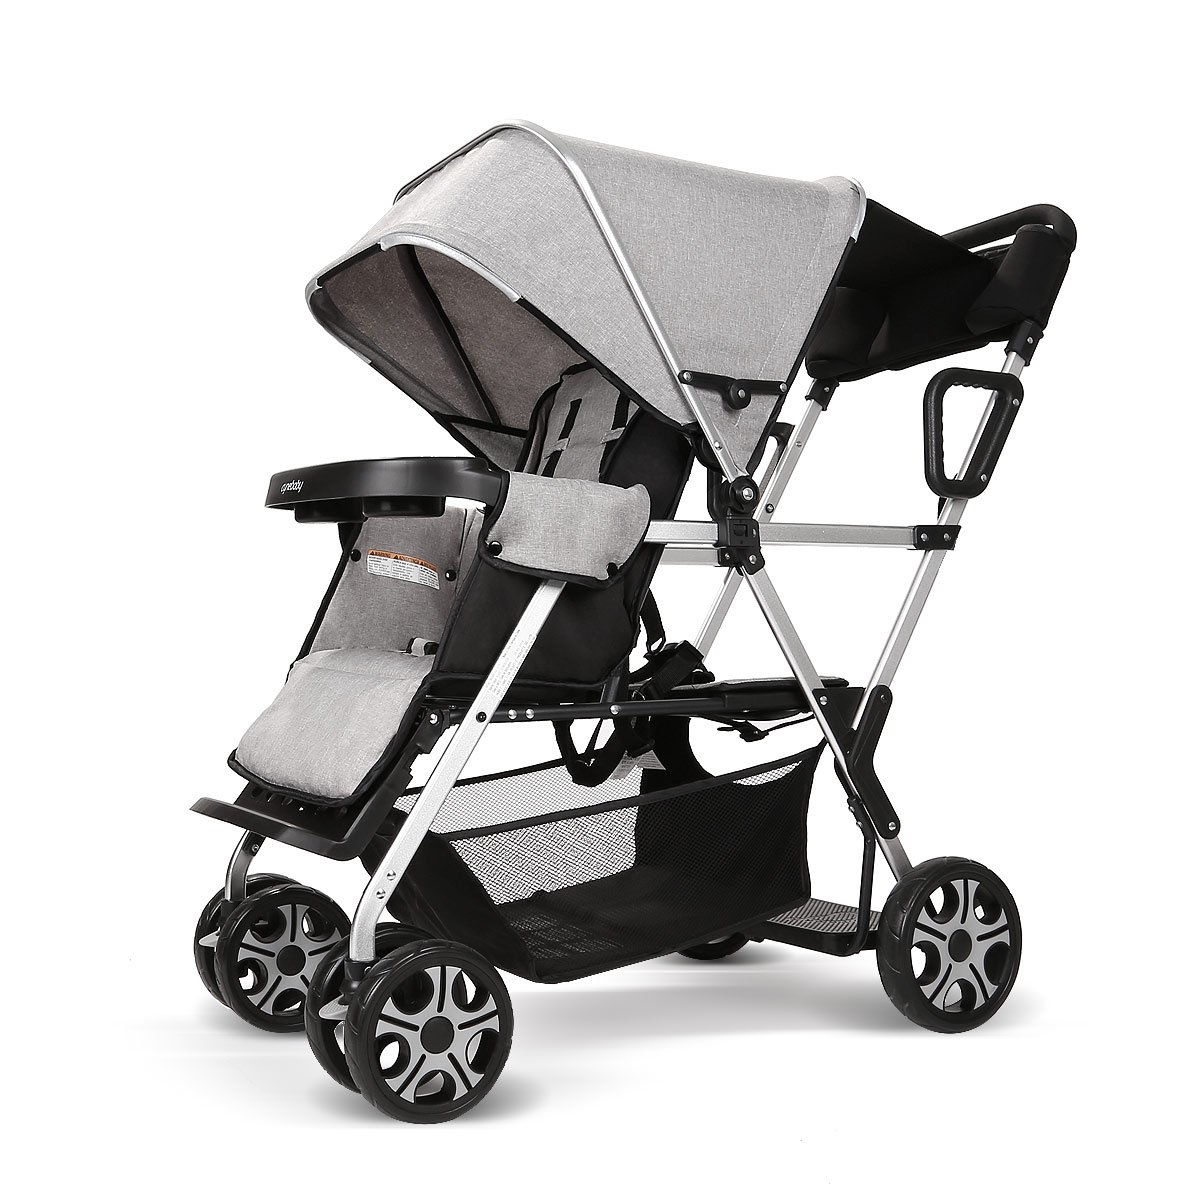 Double Stroller Convenience Urban Twin Carriage Stroller Tandem Collapsible Stroller All Terrain Double Pushchair for Toddler Girls and Boys Stable Stroller Frame with Bag Organizer (Oxford Grey) YIWANBA BR1OXGR